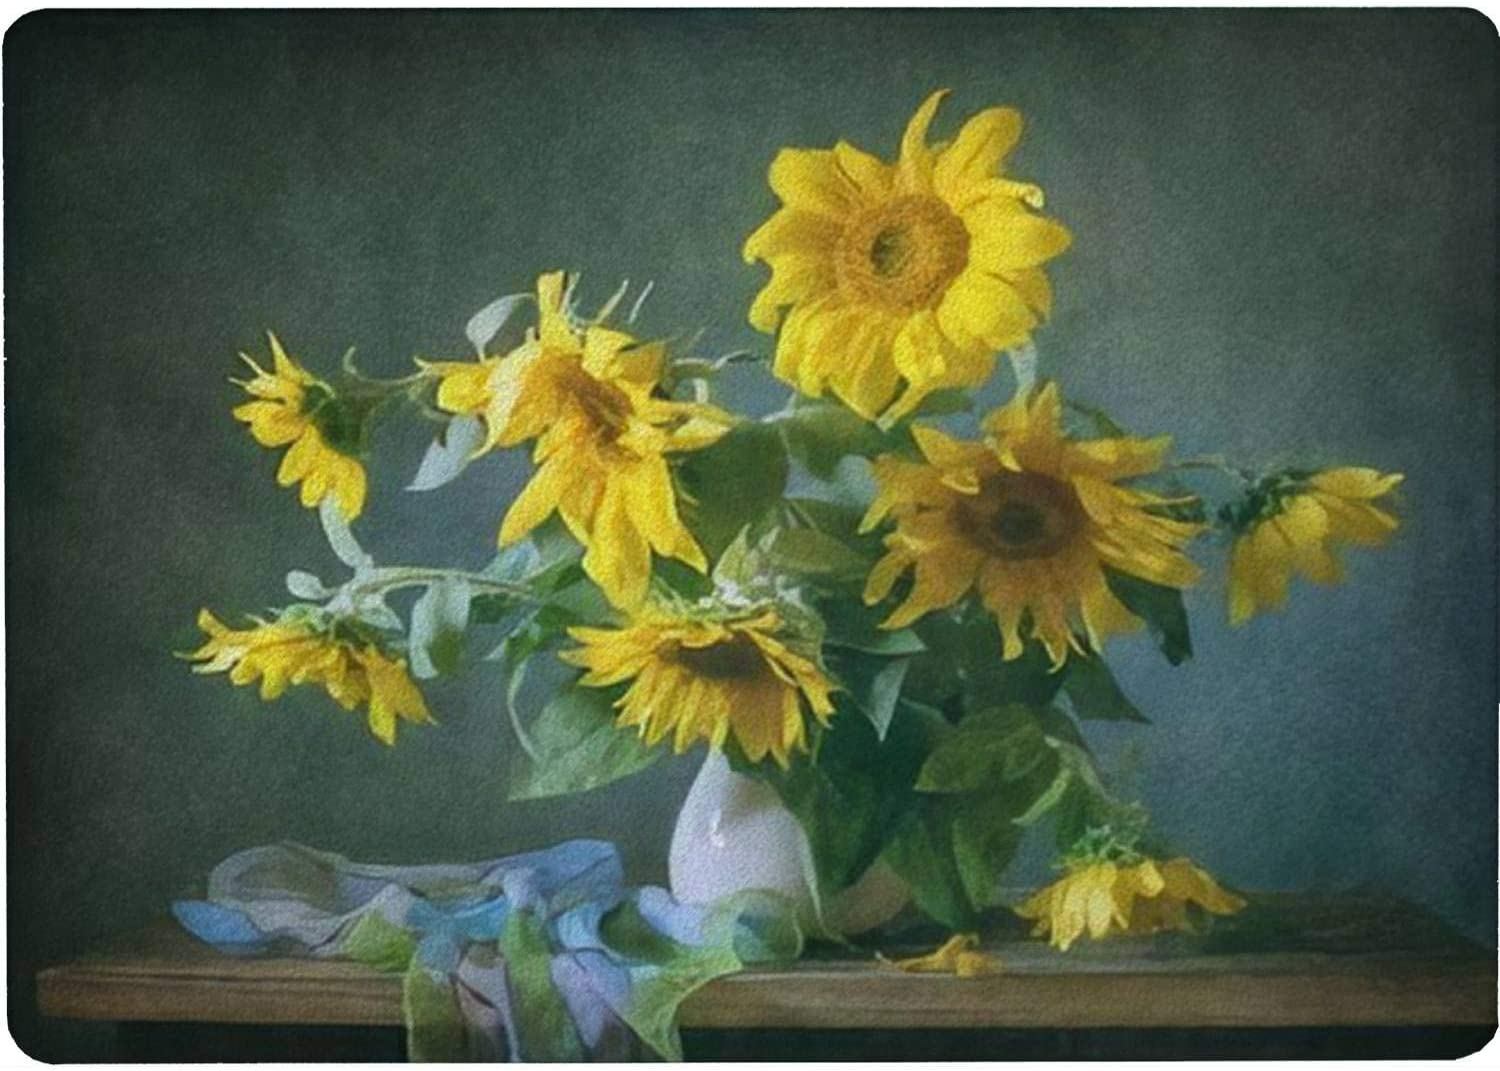 Tempered Glass Cutting Board Still life sh Popular popular a Super popular specialty store with sunflowers and